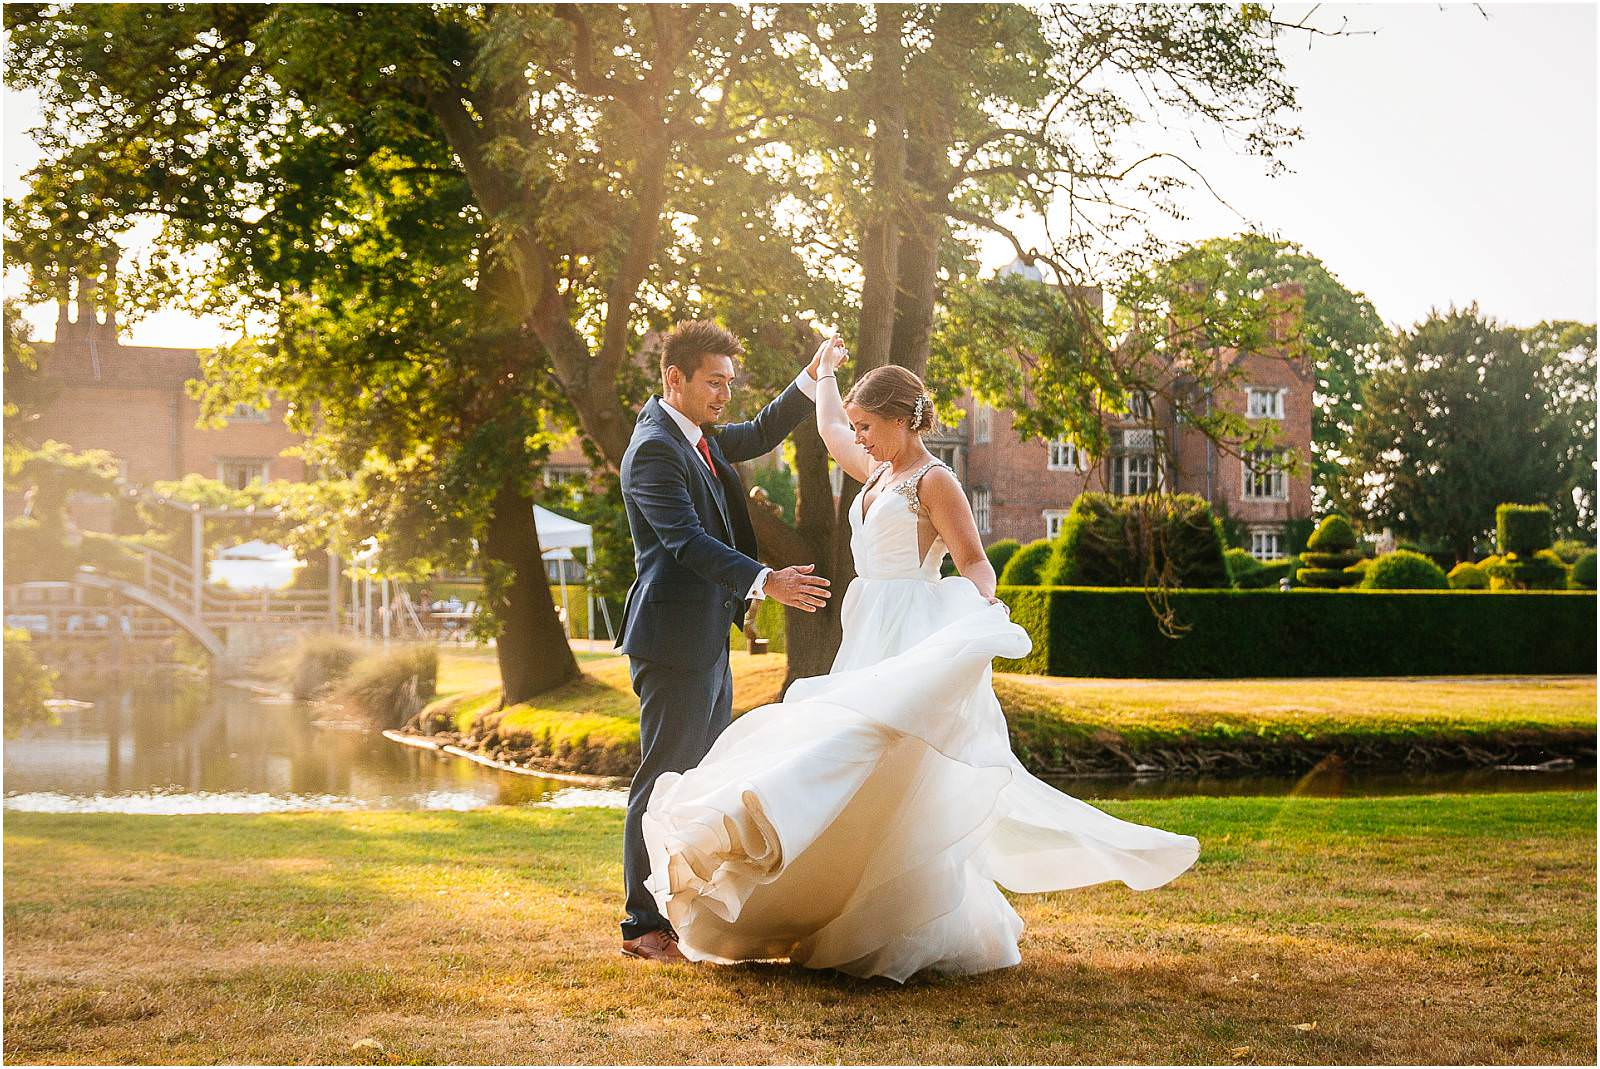 Surrey Wedding Photographer – Best Photographs of 2018